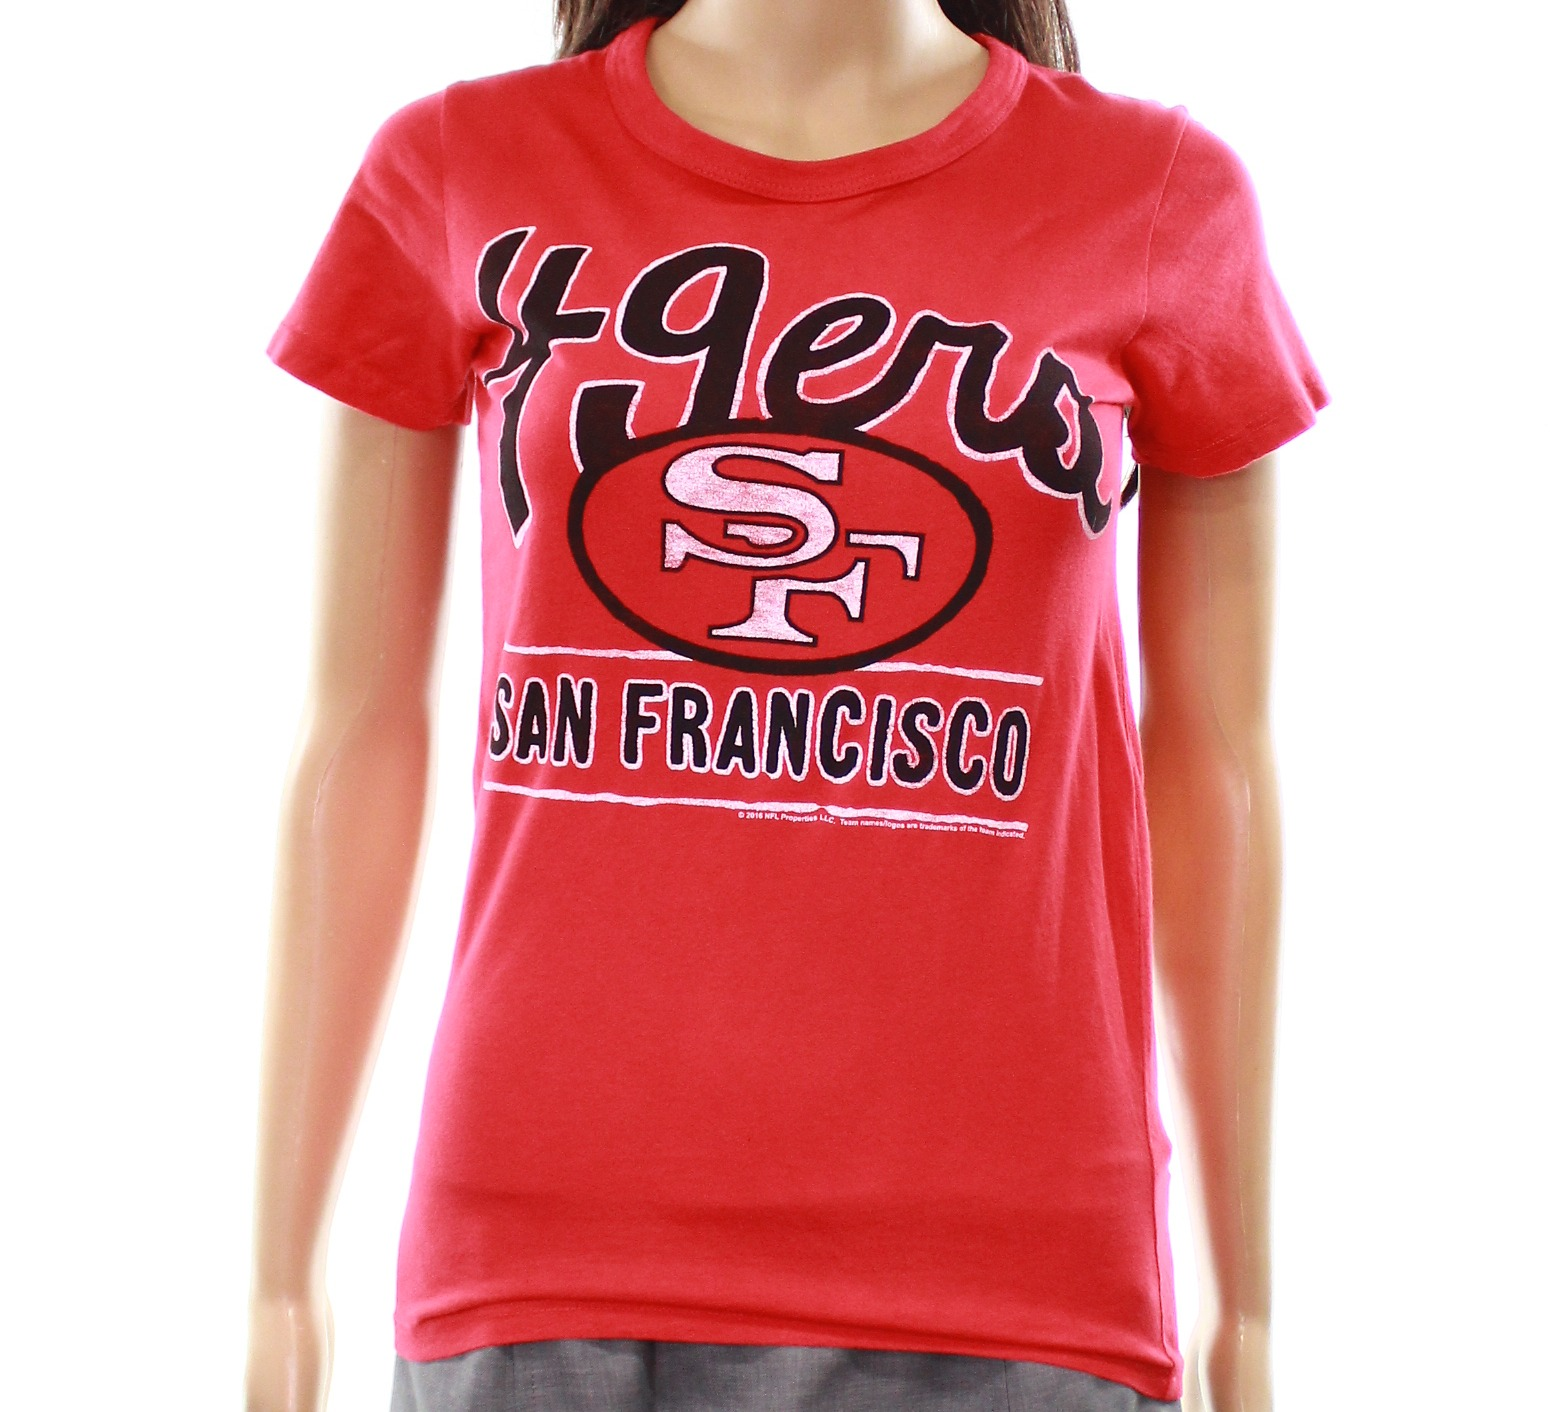 Junk Food Junk Food New Red Women S Size Large L 49ers San